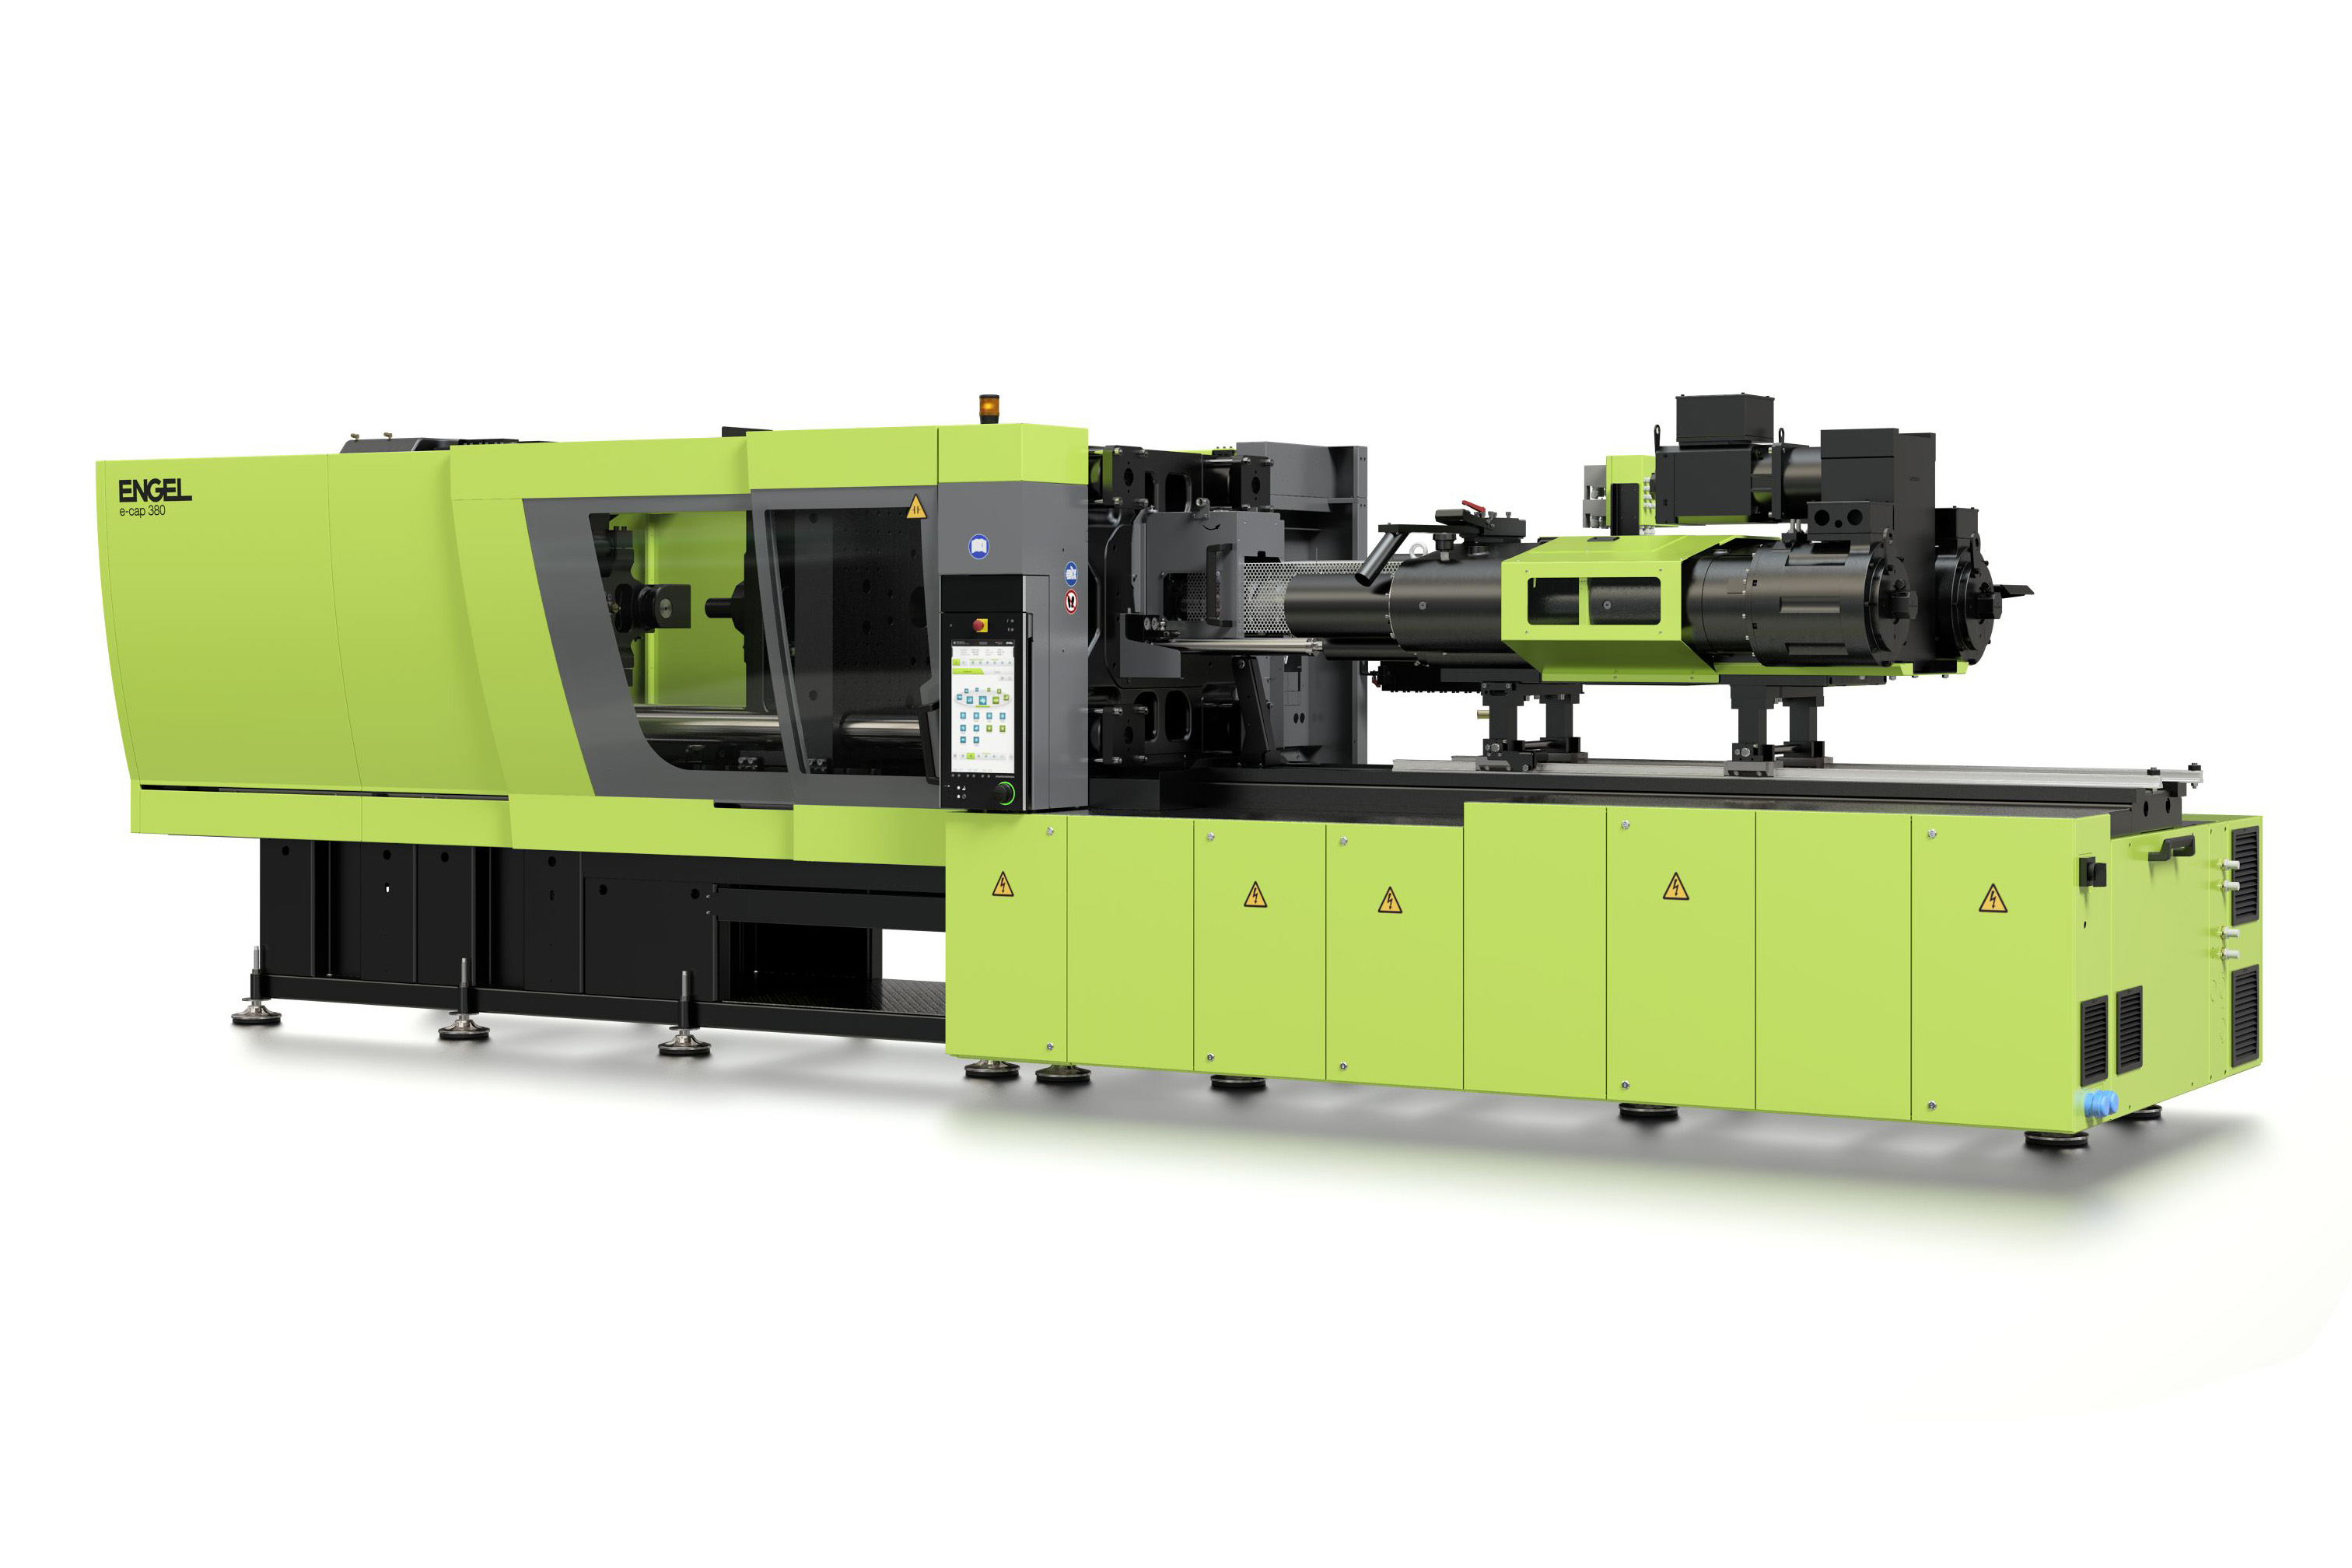 ENGEL at Fakuma 2018 Packaging